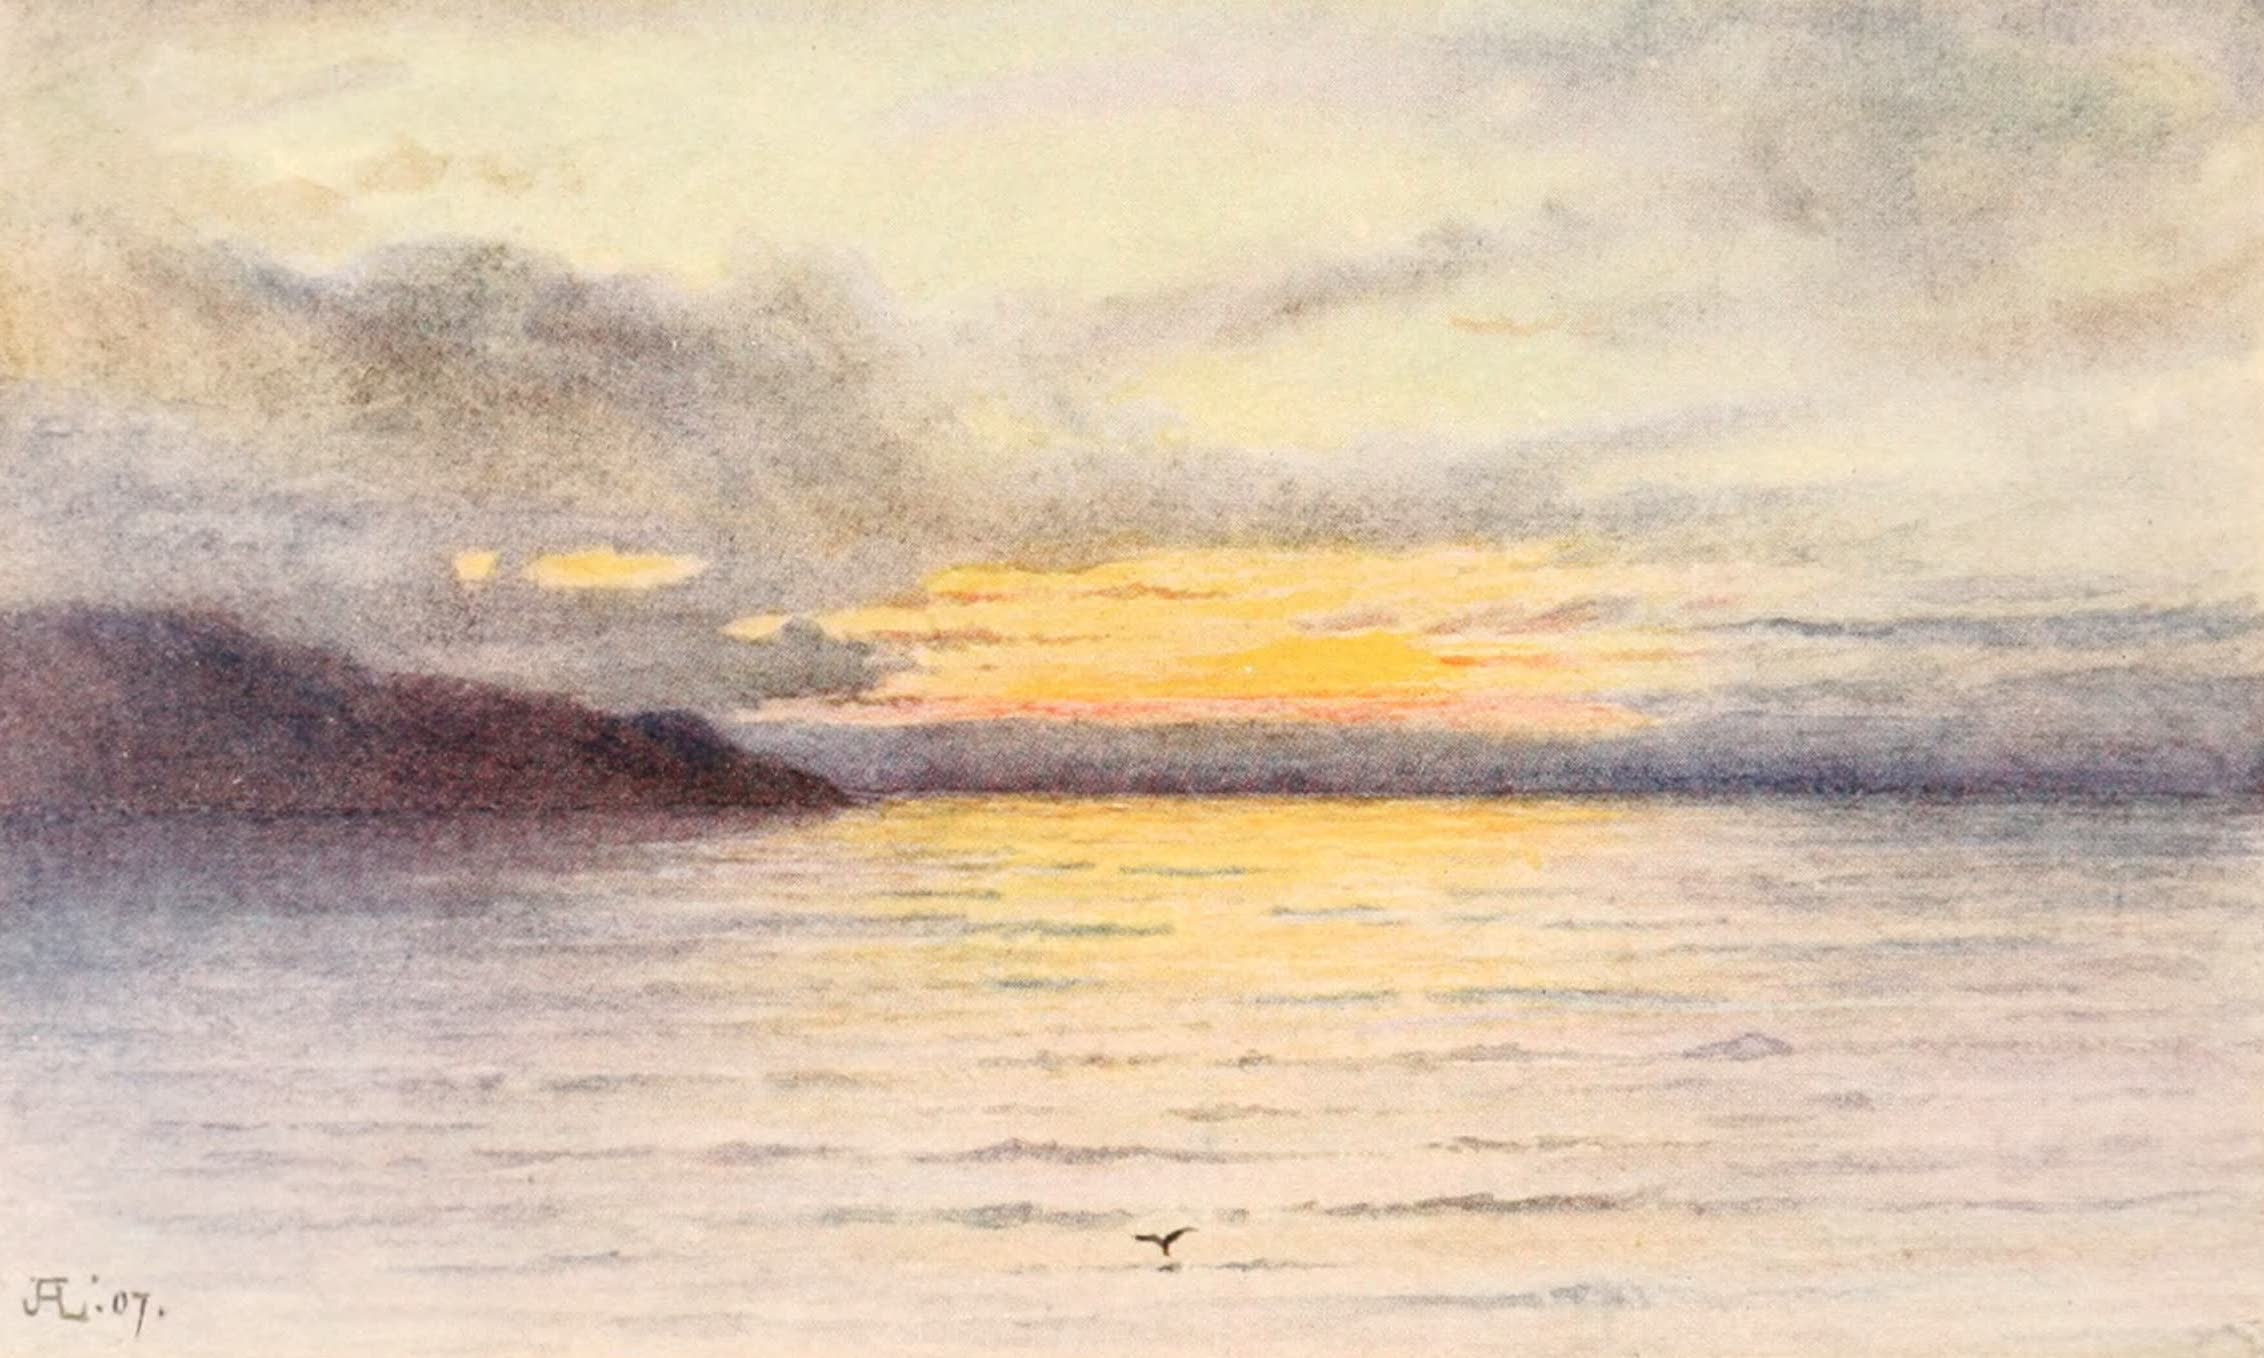 Montreux, Painted and Described - Sunset on the Lake (1908)